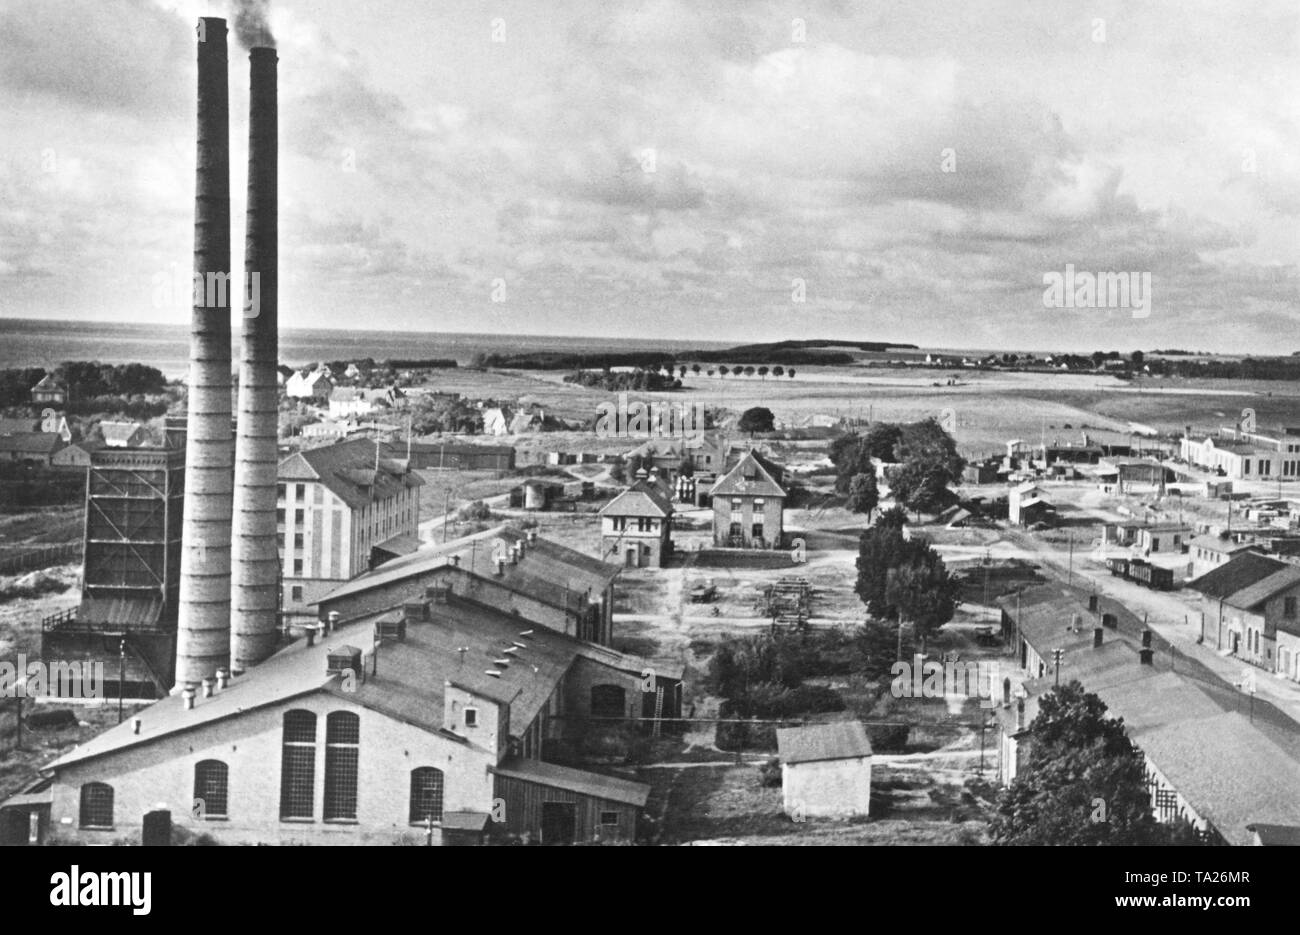 View of a factory premises for amber processing in East Prussia / Germany. The picture shows a building with chimney and other factory buildings. - Stock Image